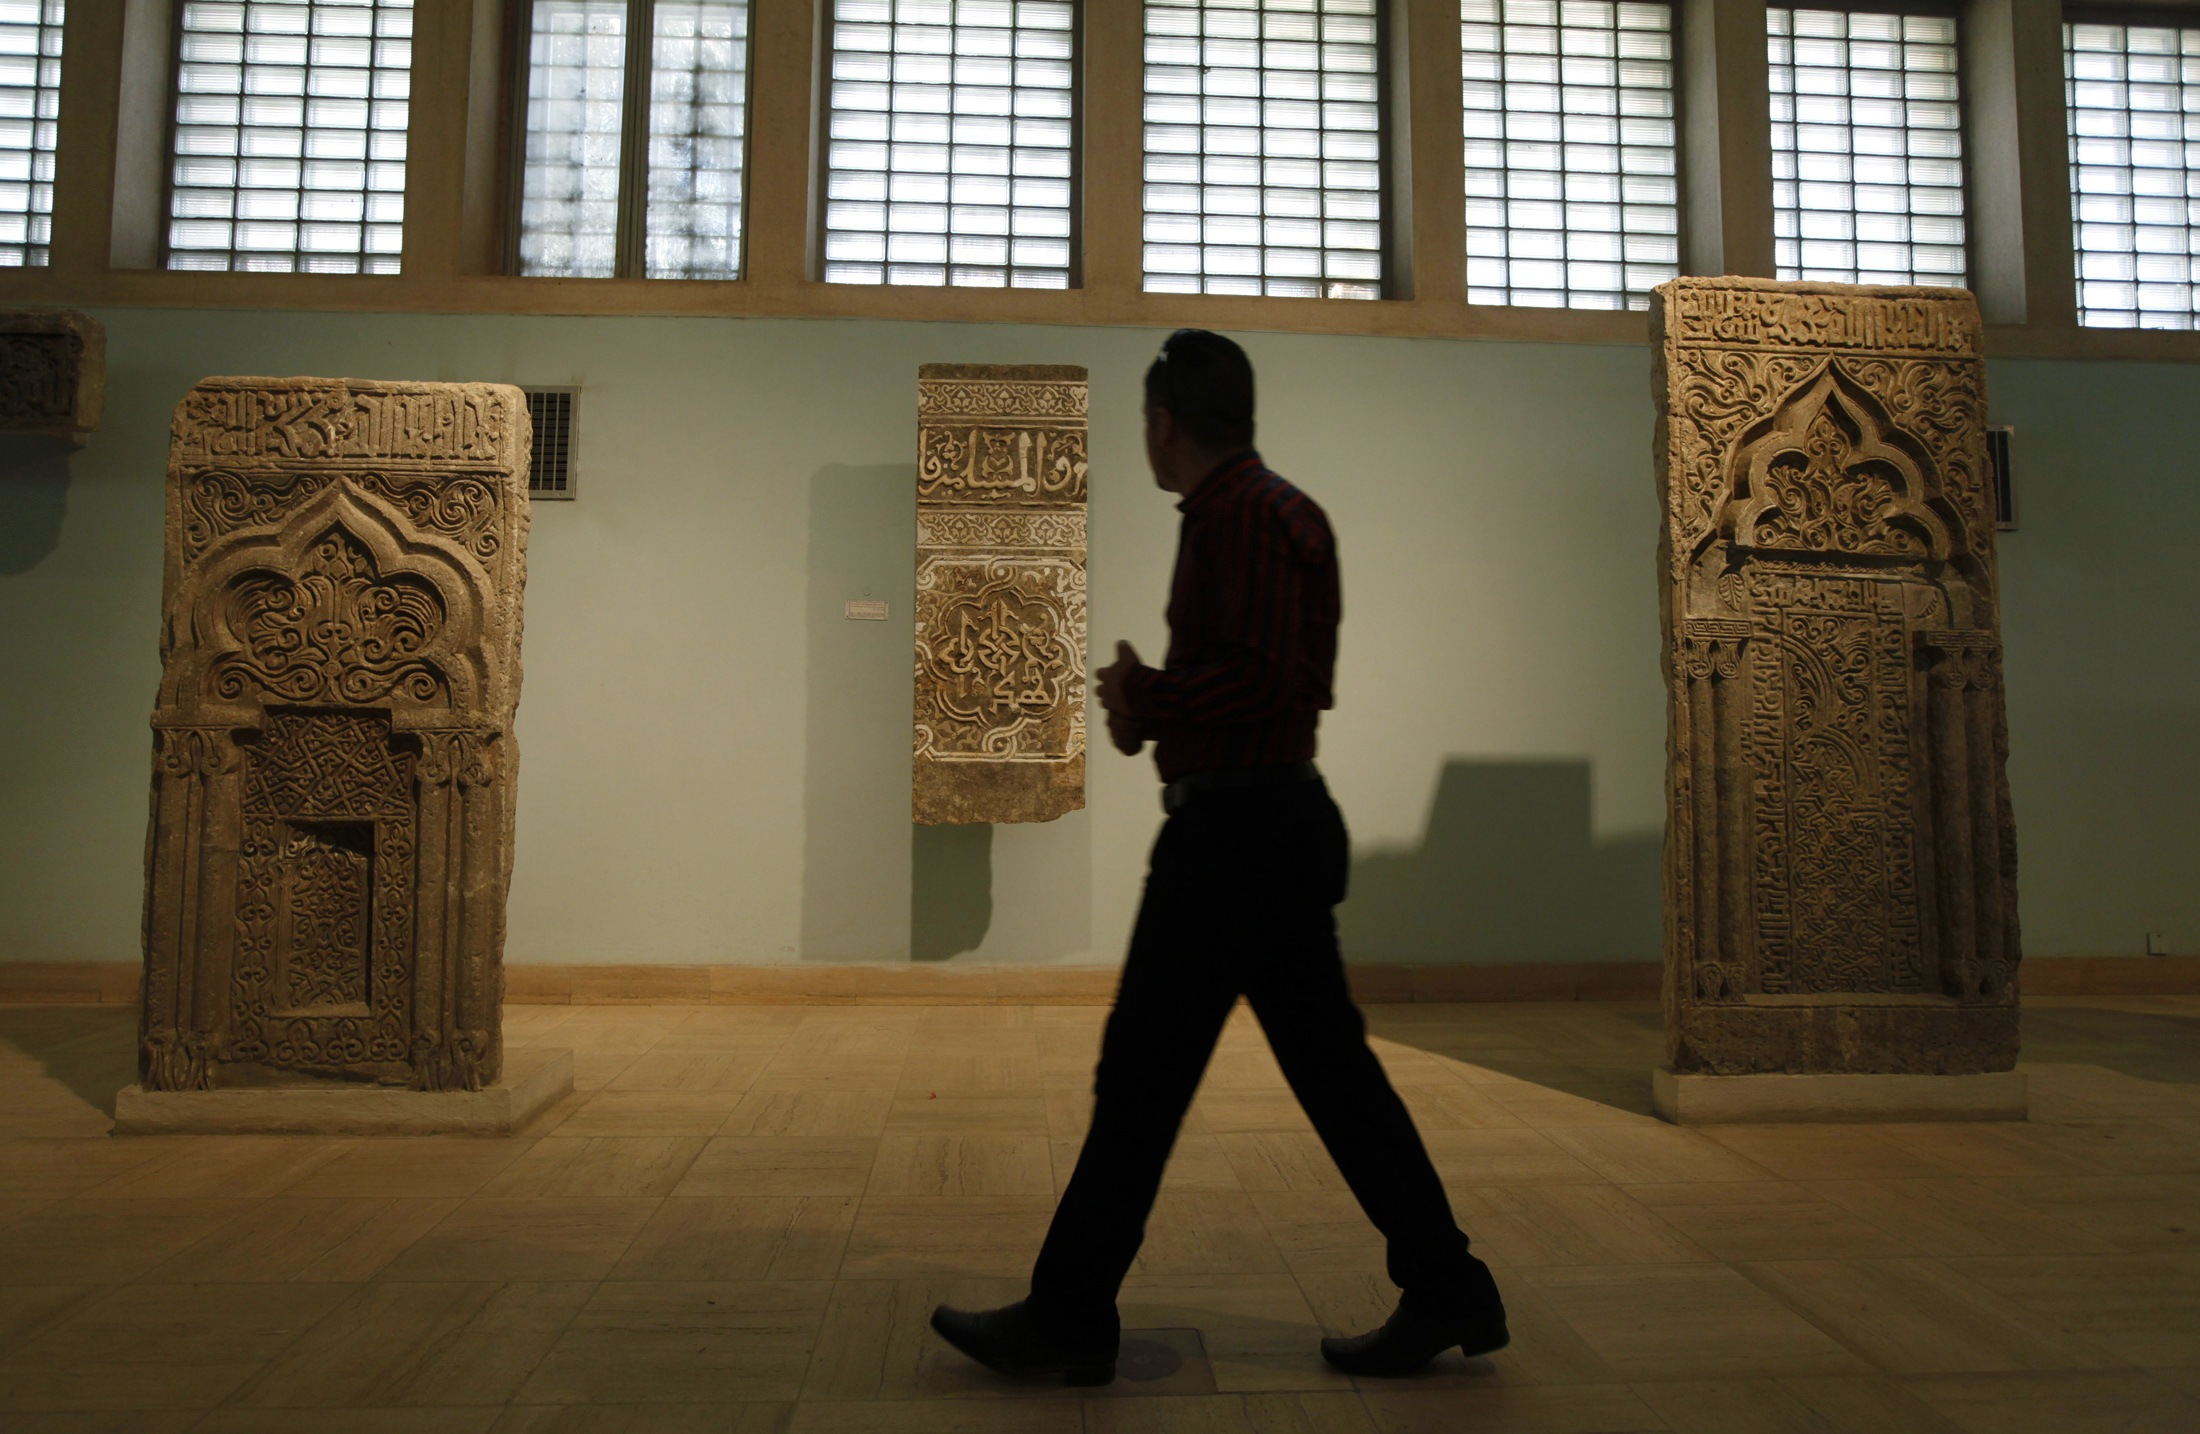 A man walks past artifacts inside the National Museum of Iraq in Baghdad.